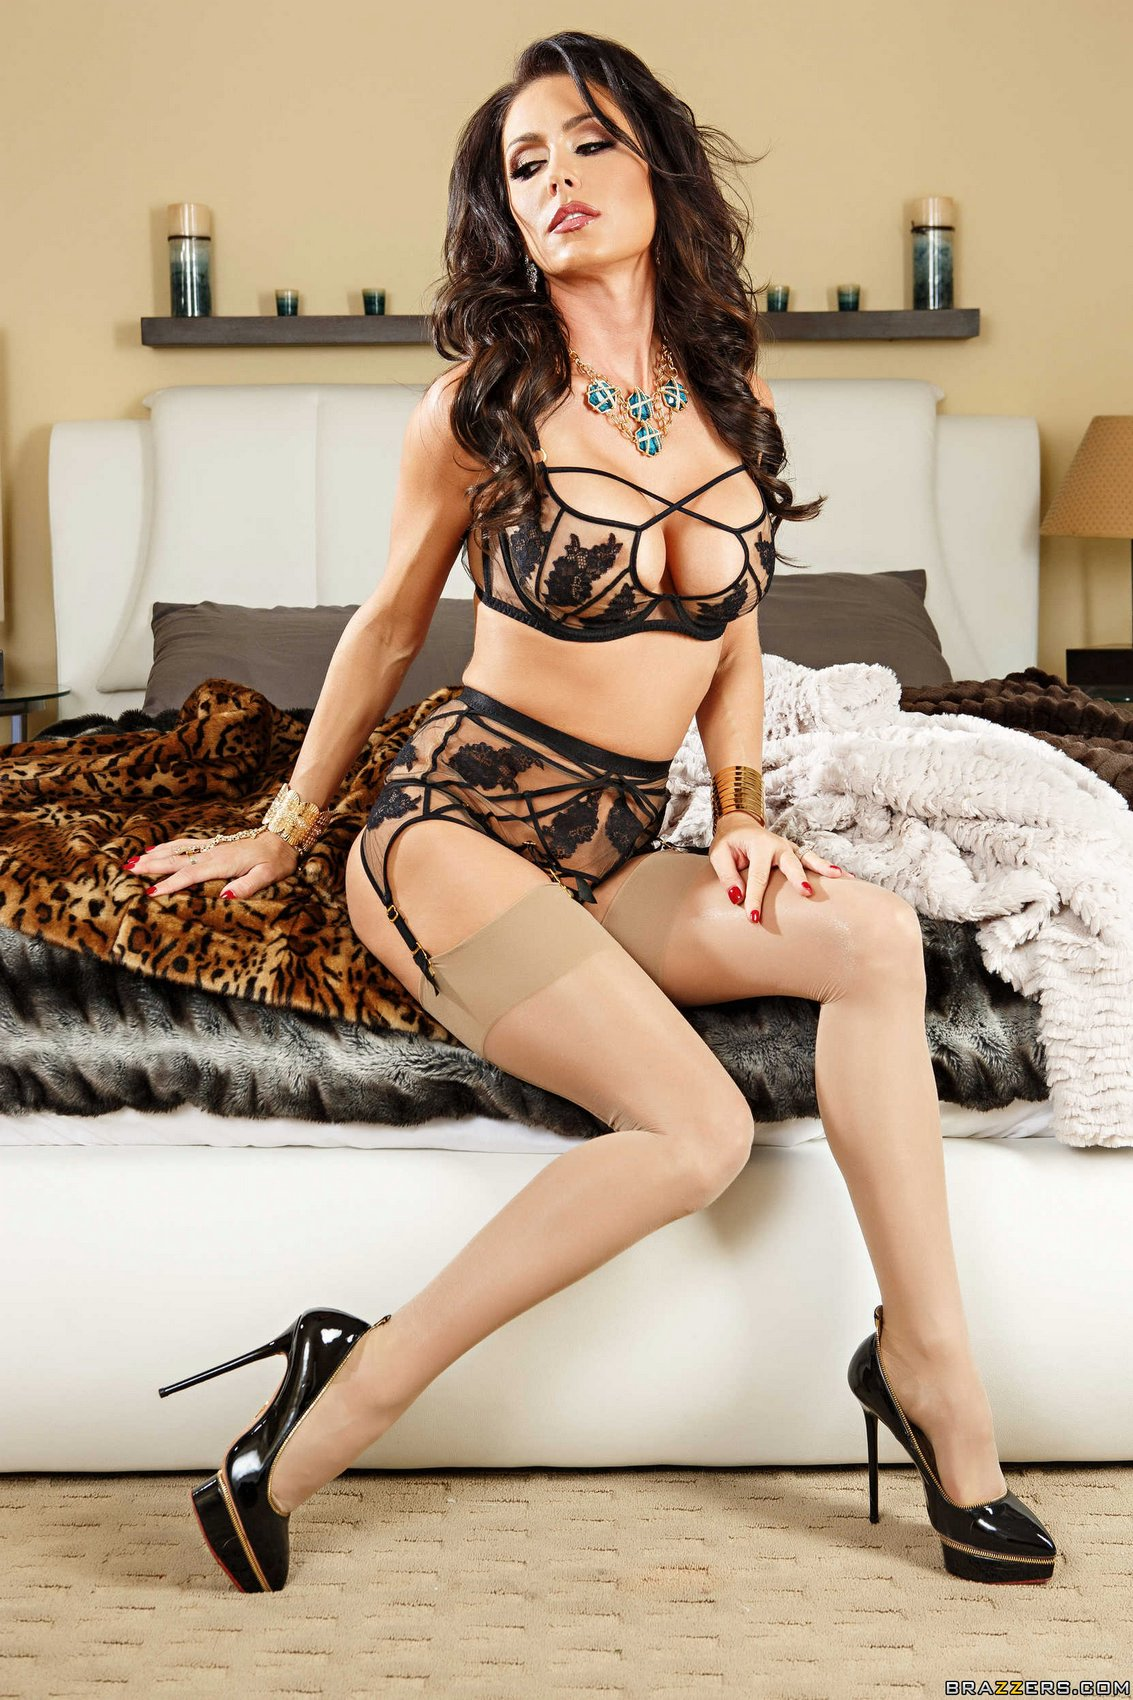 Pity, that Jessica jaymes hot milf